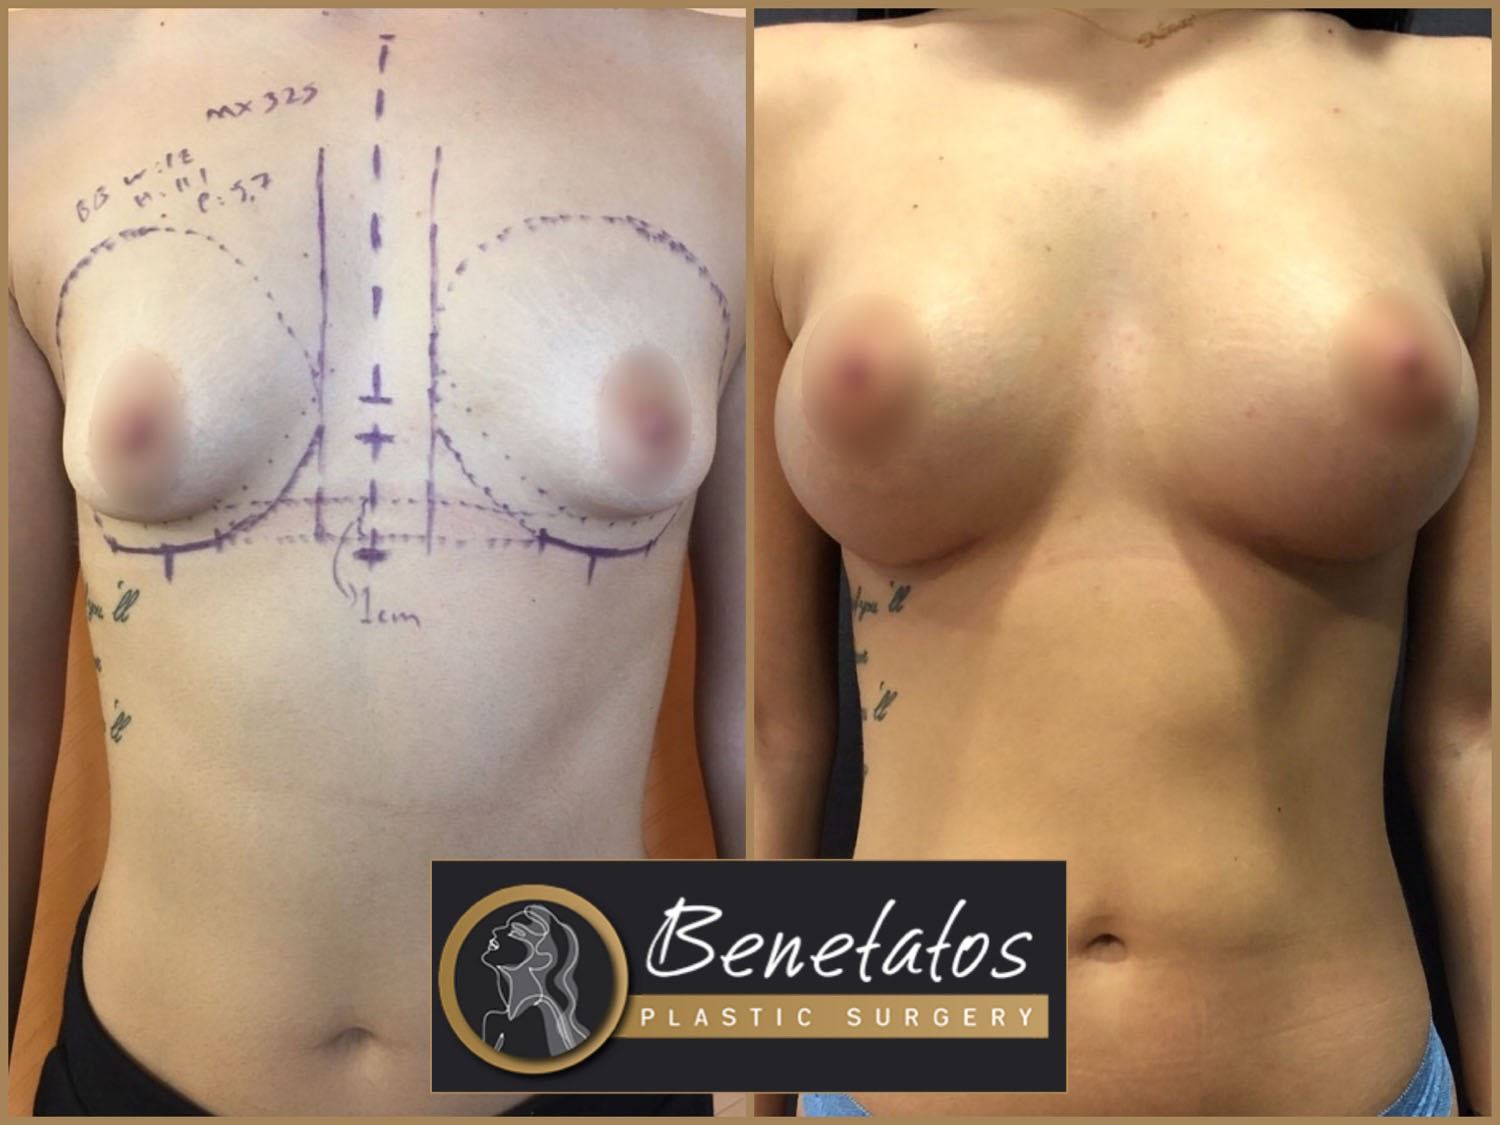 BeforeAfter-AestheticBreastSurgery-BreastAugmentationUsingSiliconeImplants-1